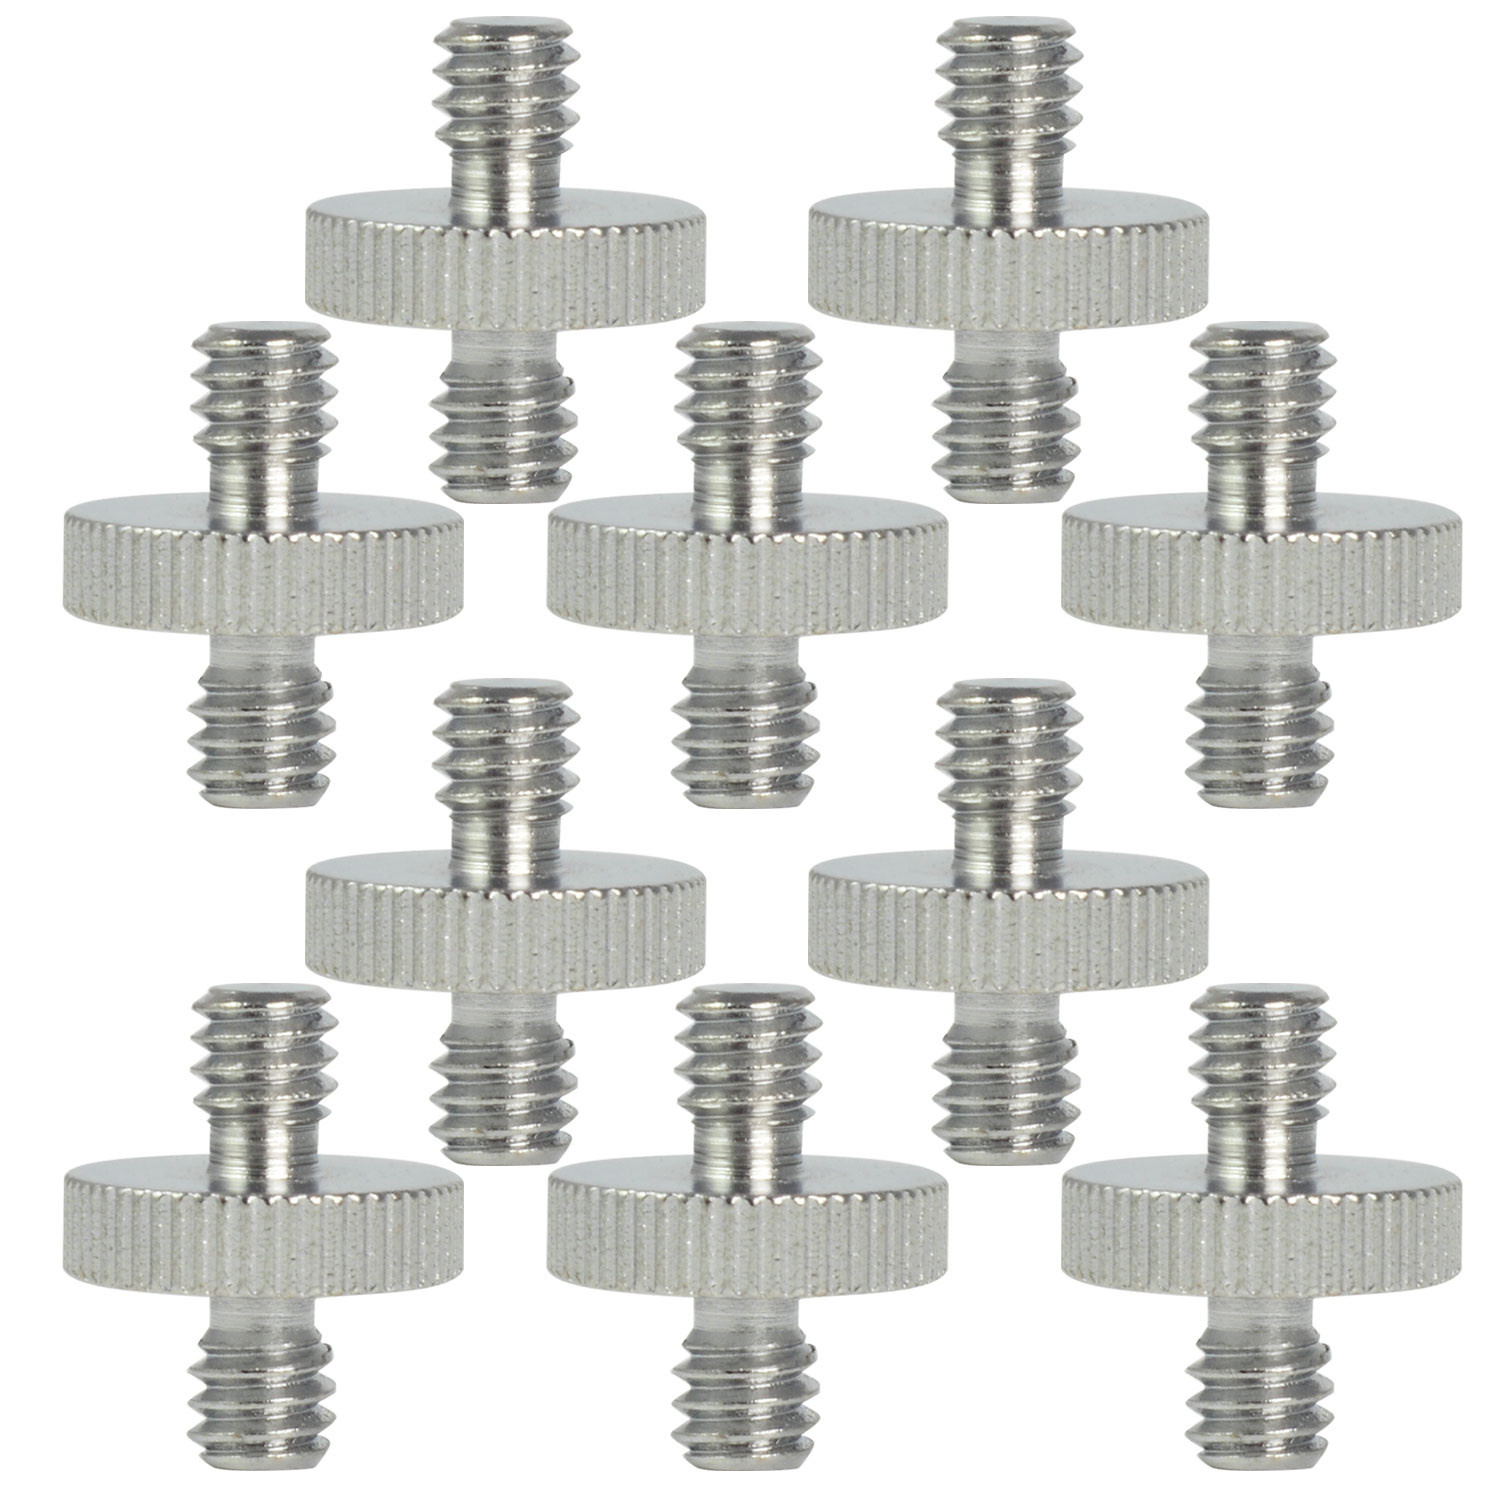 "MENGS® 10Pcs SR-03 1/4"" to 1/4"" Male Threaded Steel Screw Adapter (Ø16mm x H20mm) for Tripod Monopod Quick Release Plate Camera"